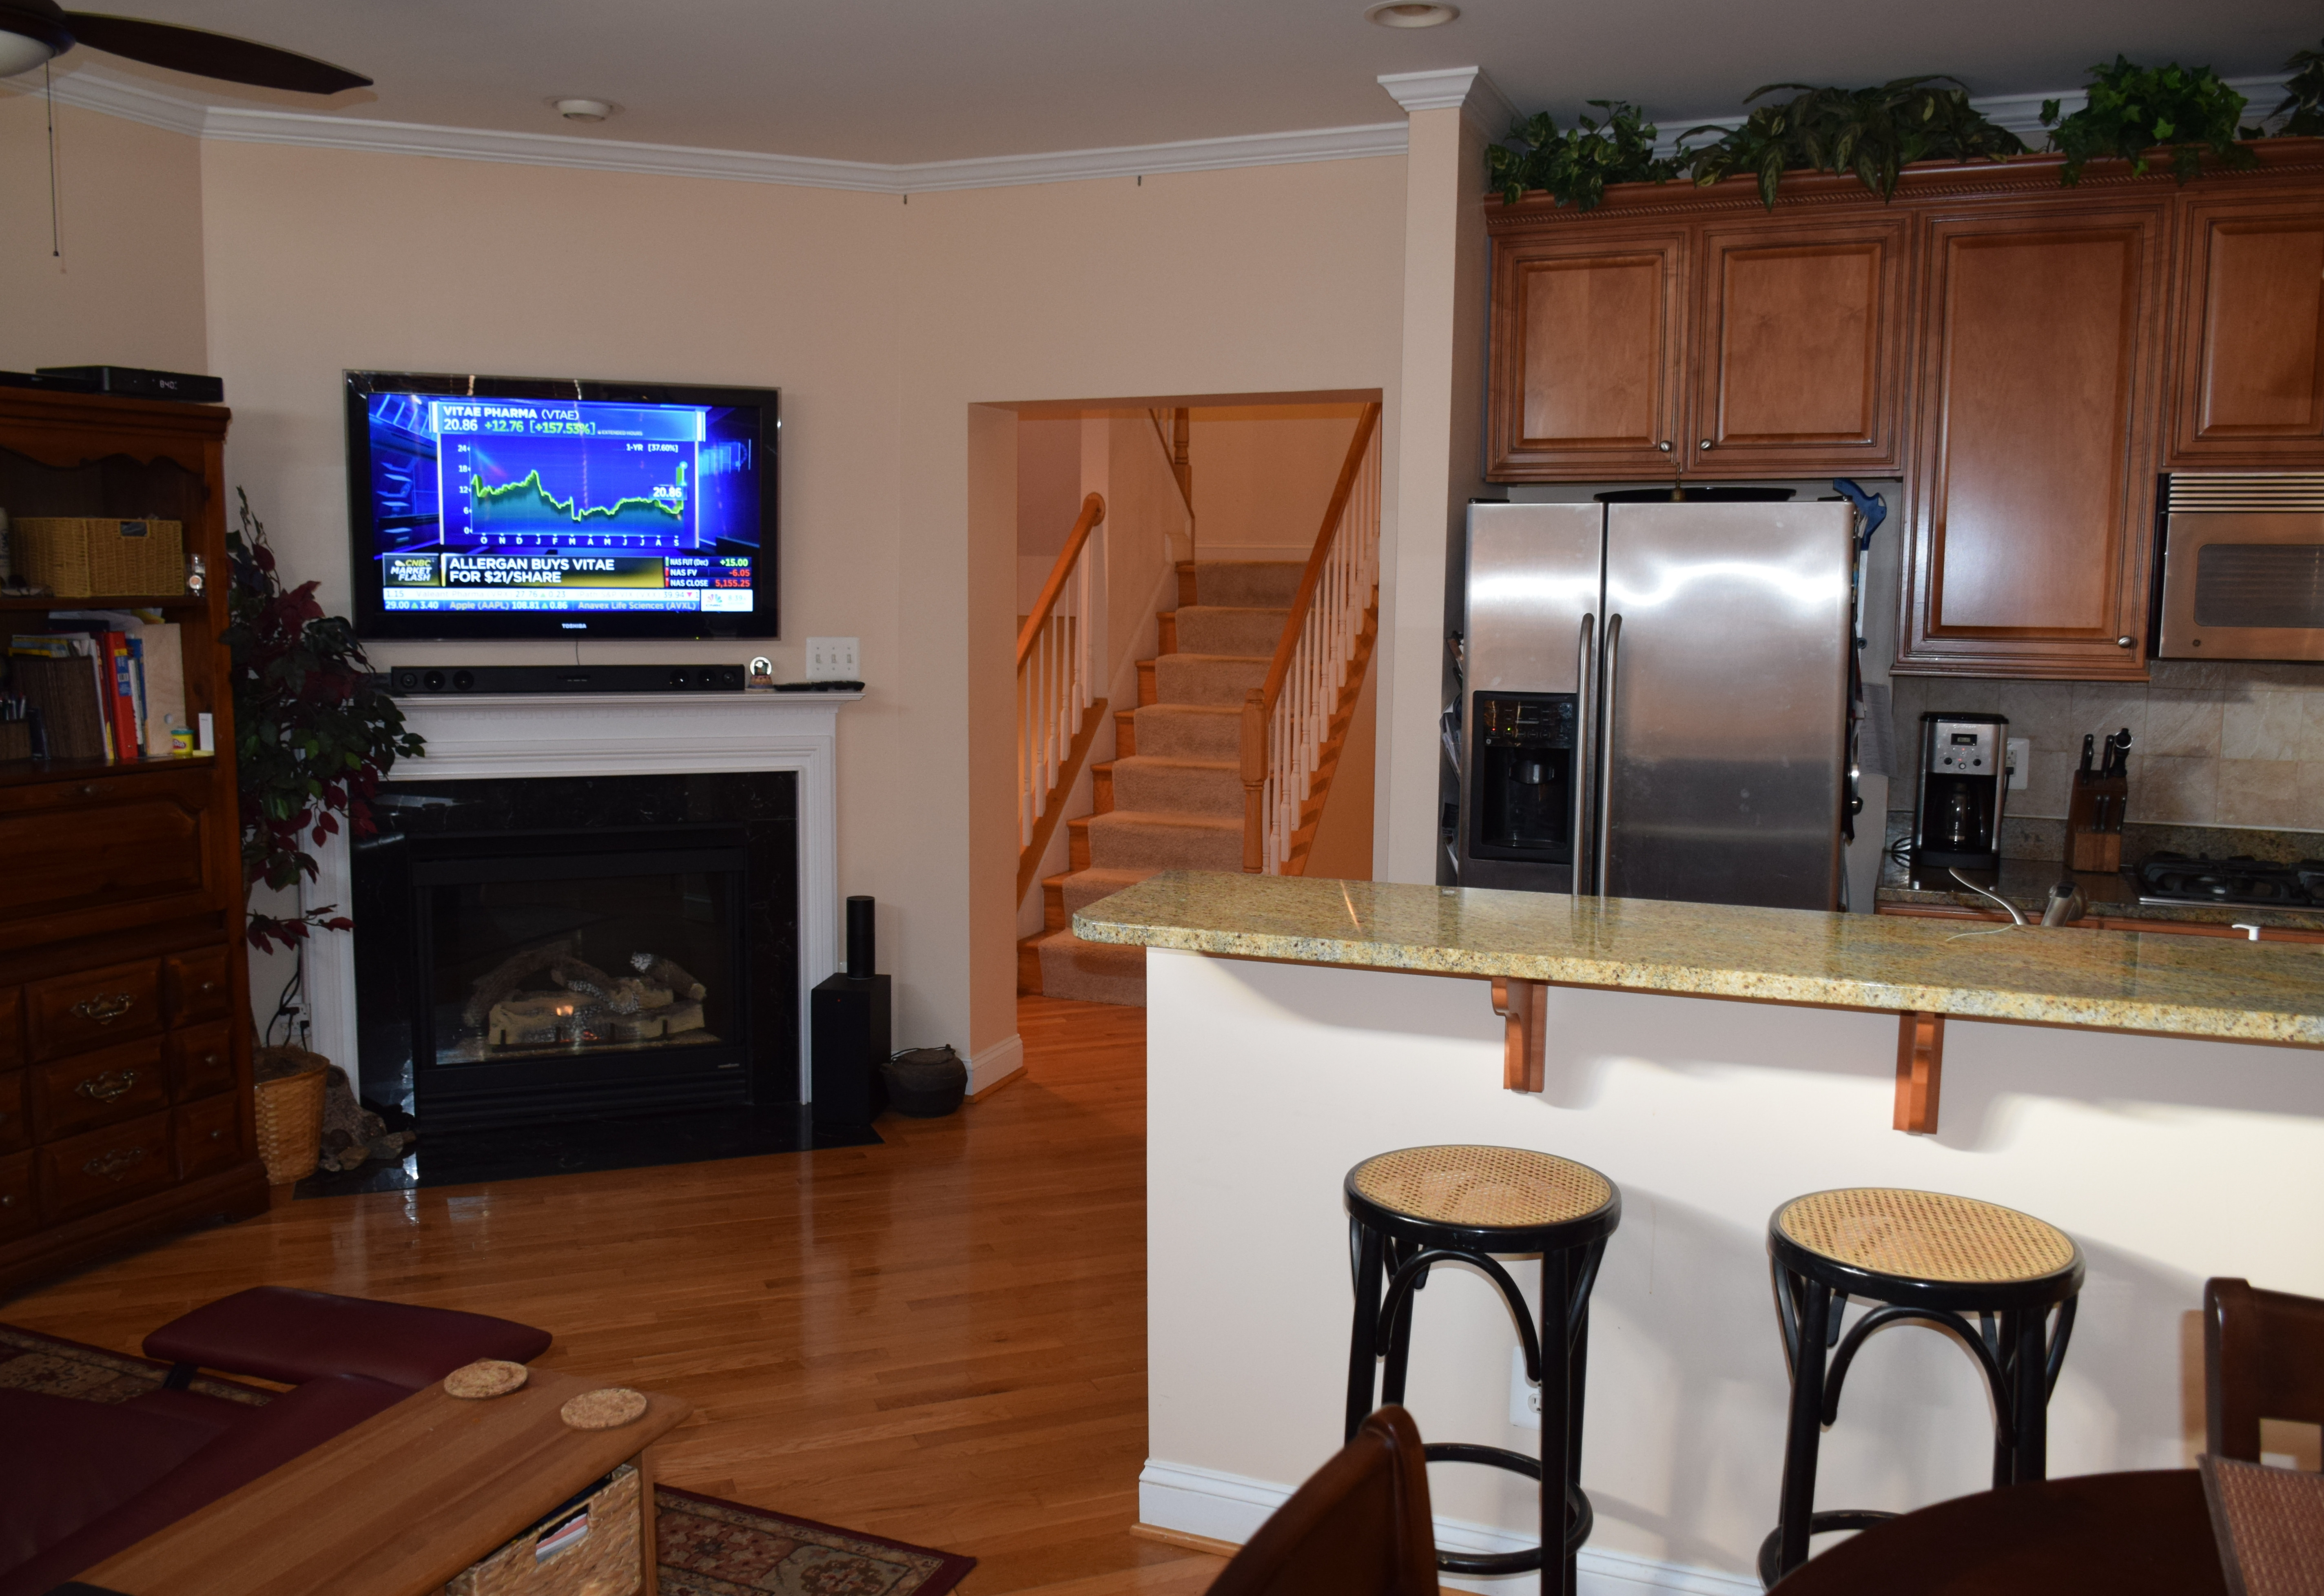 Southern Kentucky Hardwood Flooring Inc Of Washington Dc Historic Nearby town In Va Modern townhome Open Dates Inside Previous Next